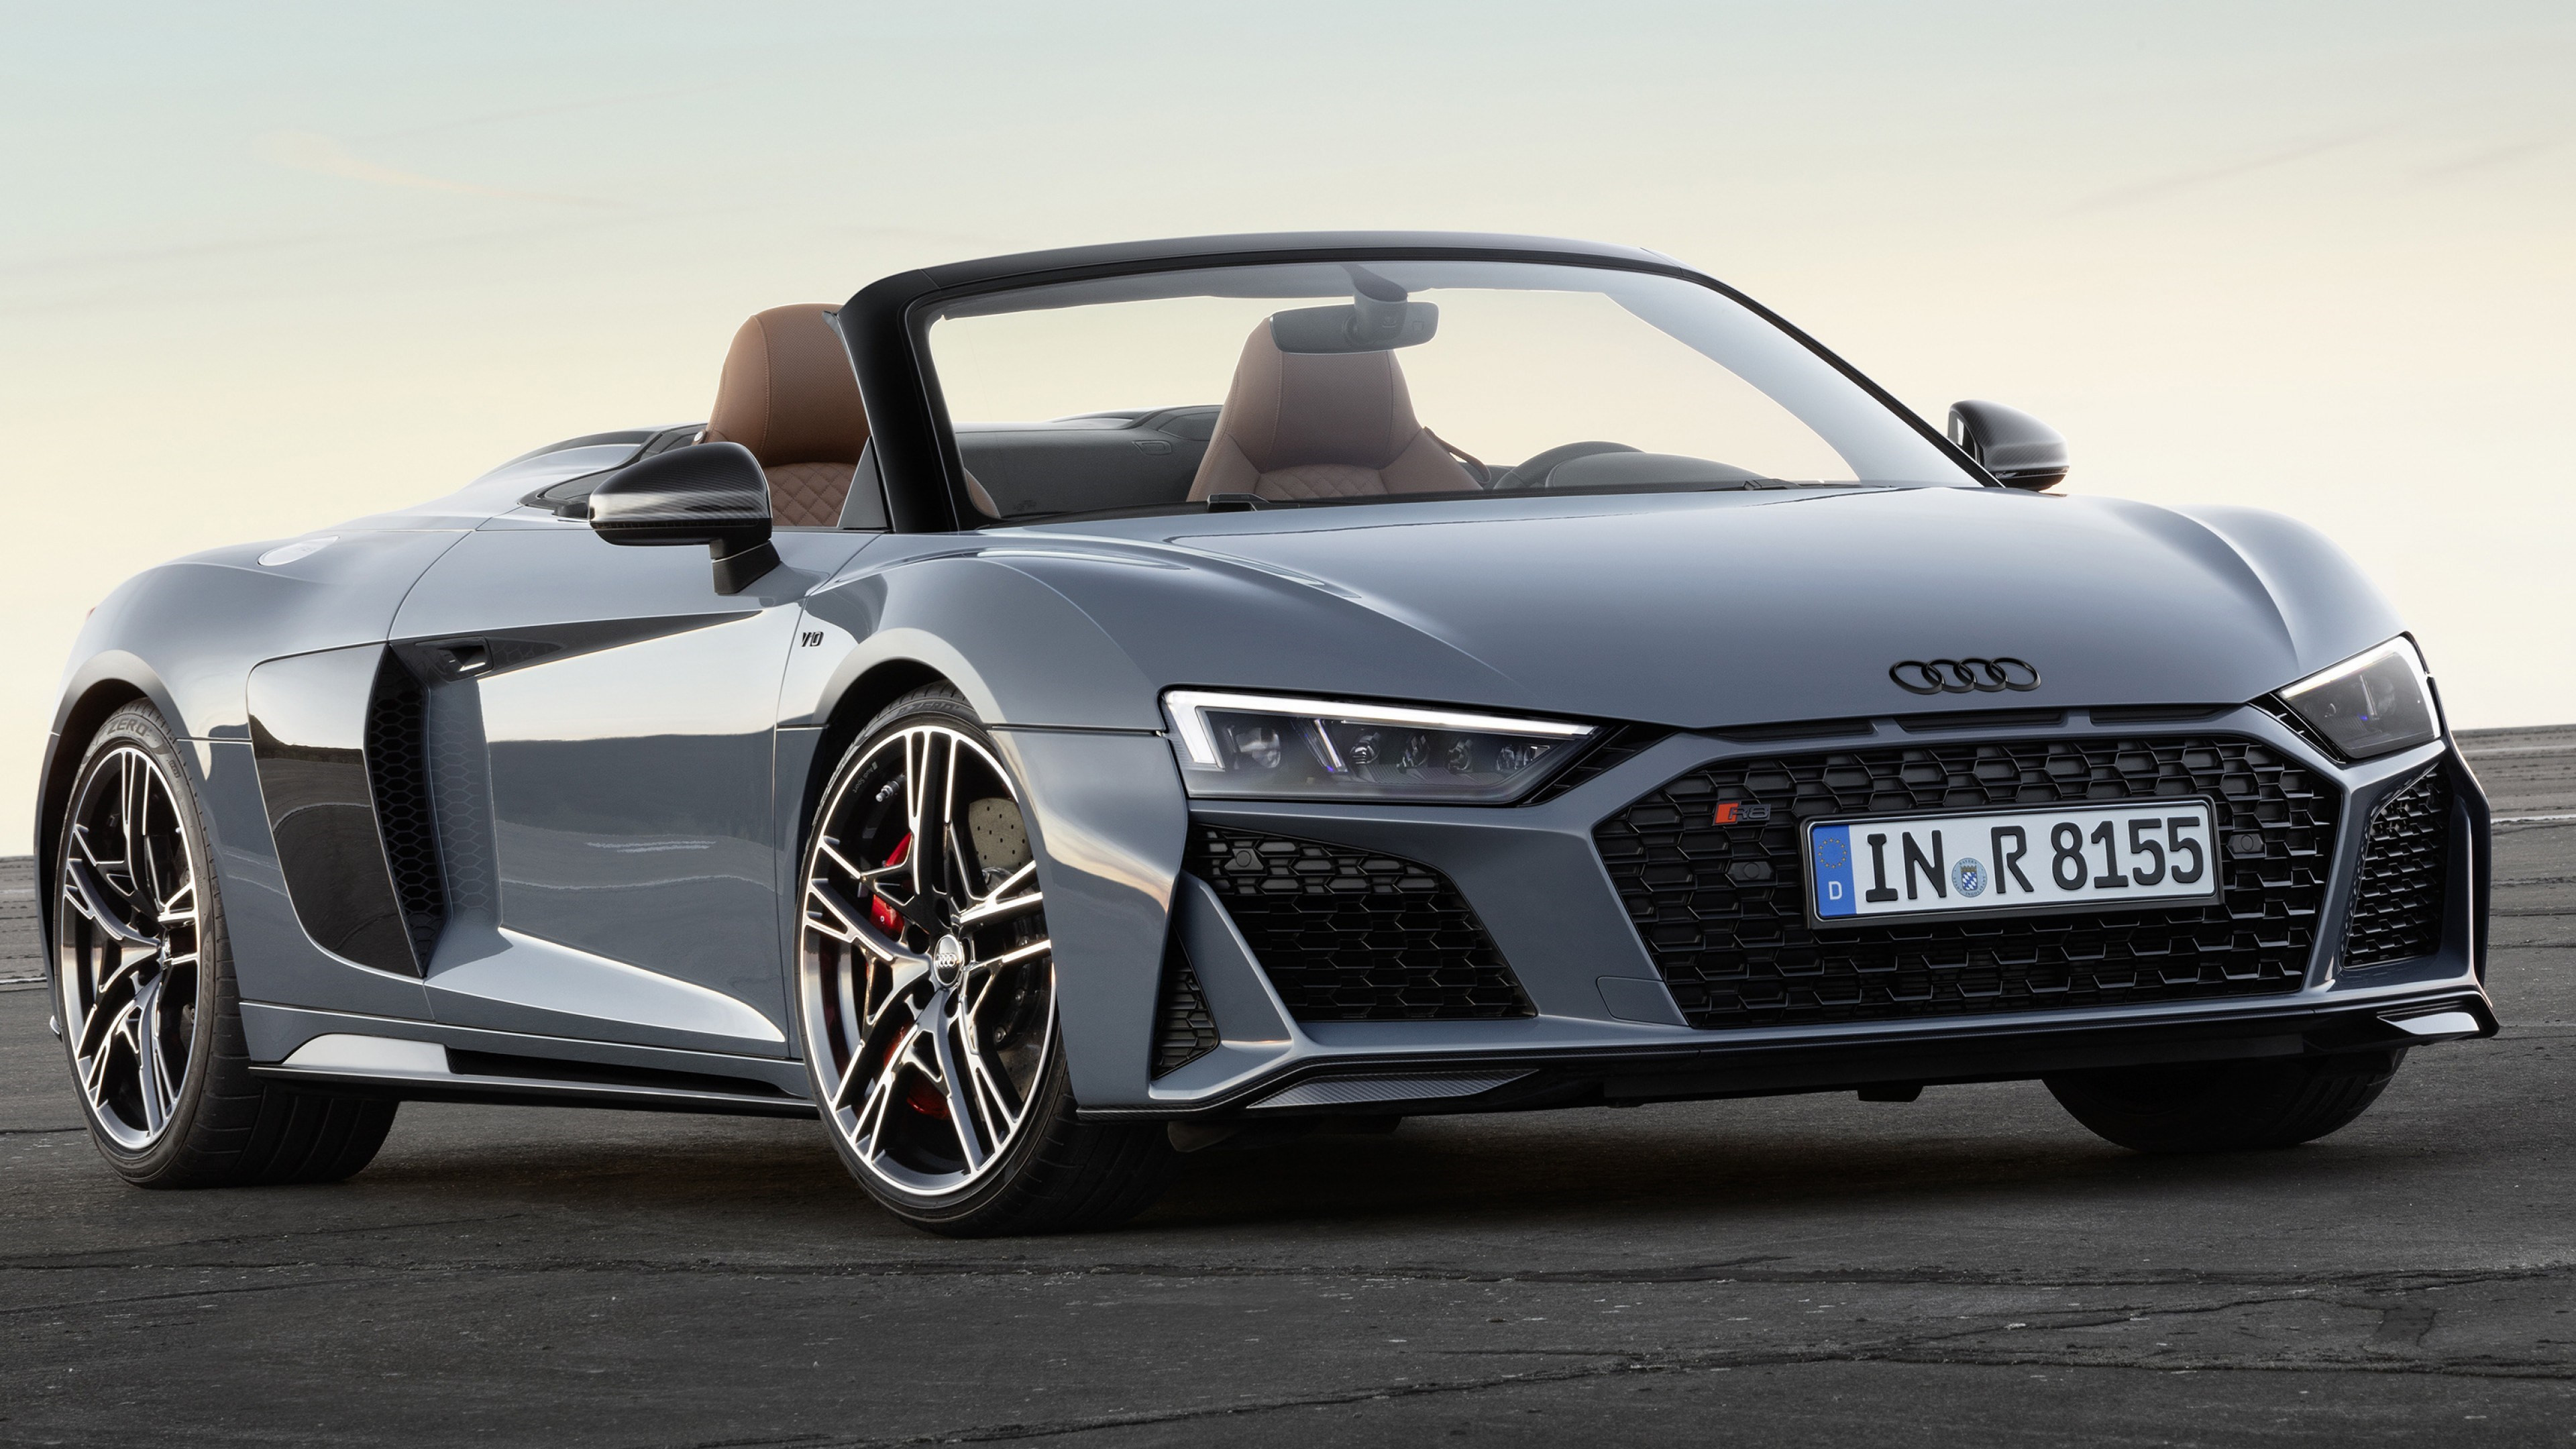 Audi R8 V10 Spyder | 3840x2160 wallpaper